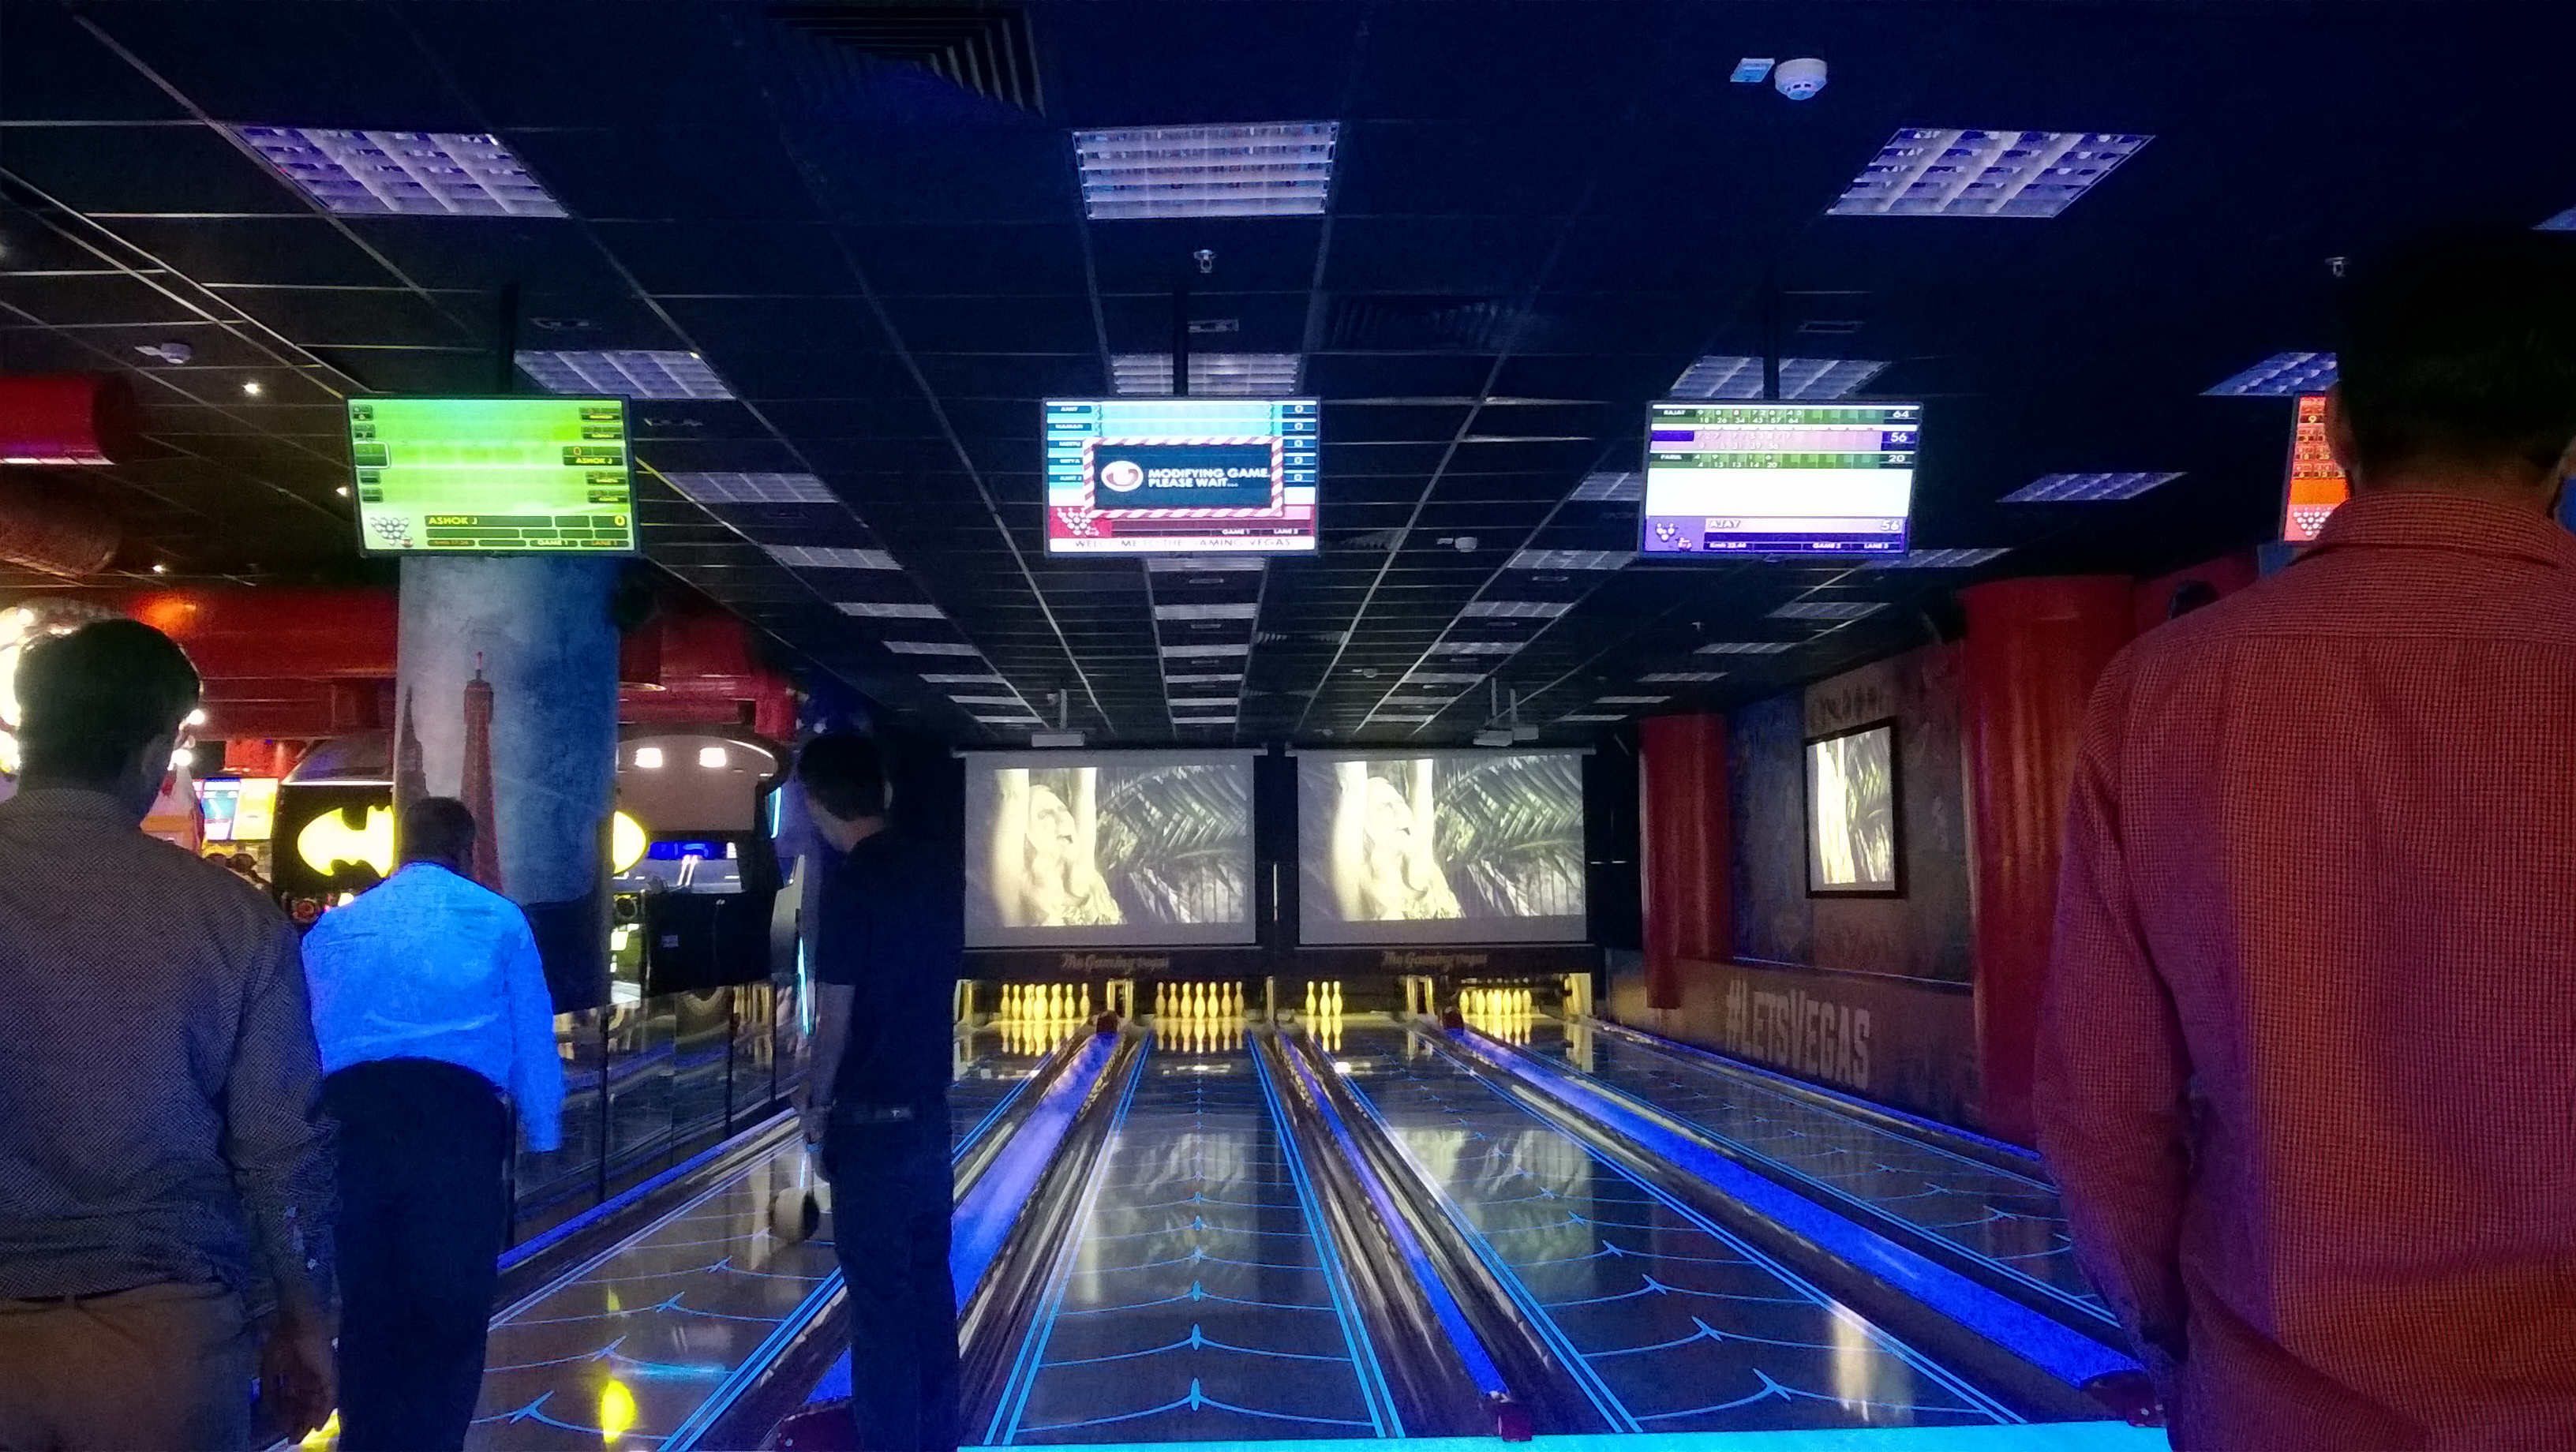 Bowling Alley in Downtown Legends Bowl at The Gaming Vegas of Noida